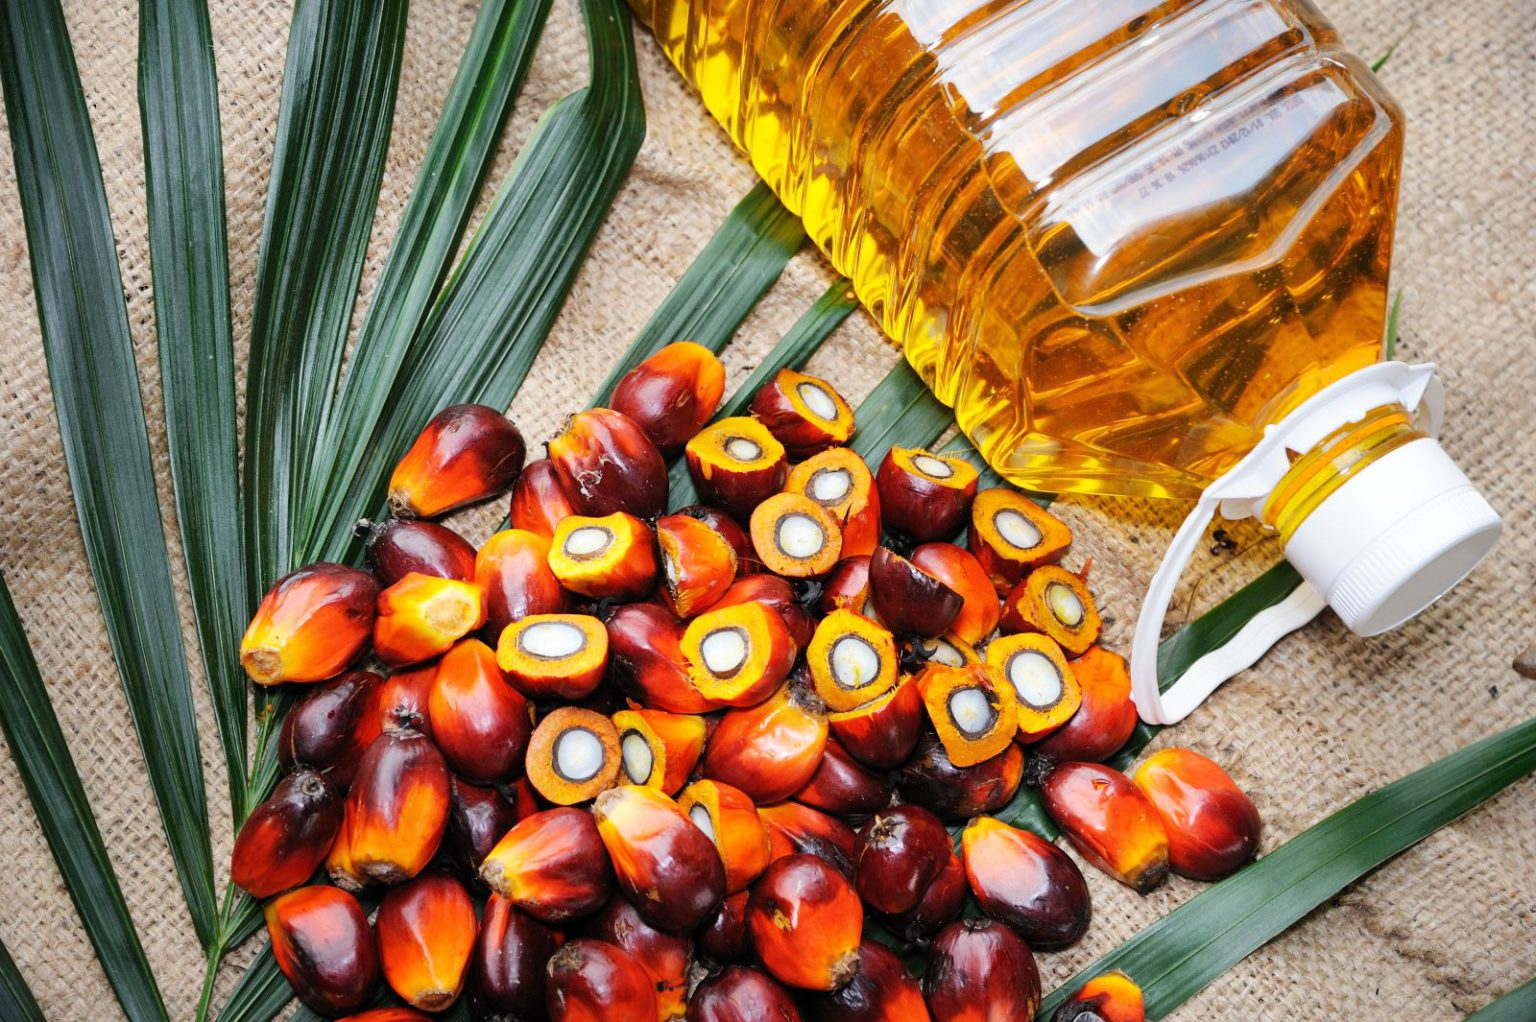 Big Nepali investments in oil processing at risk after India's palm oil ban